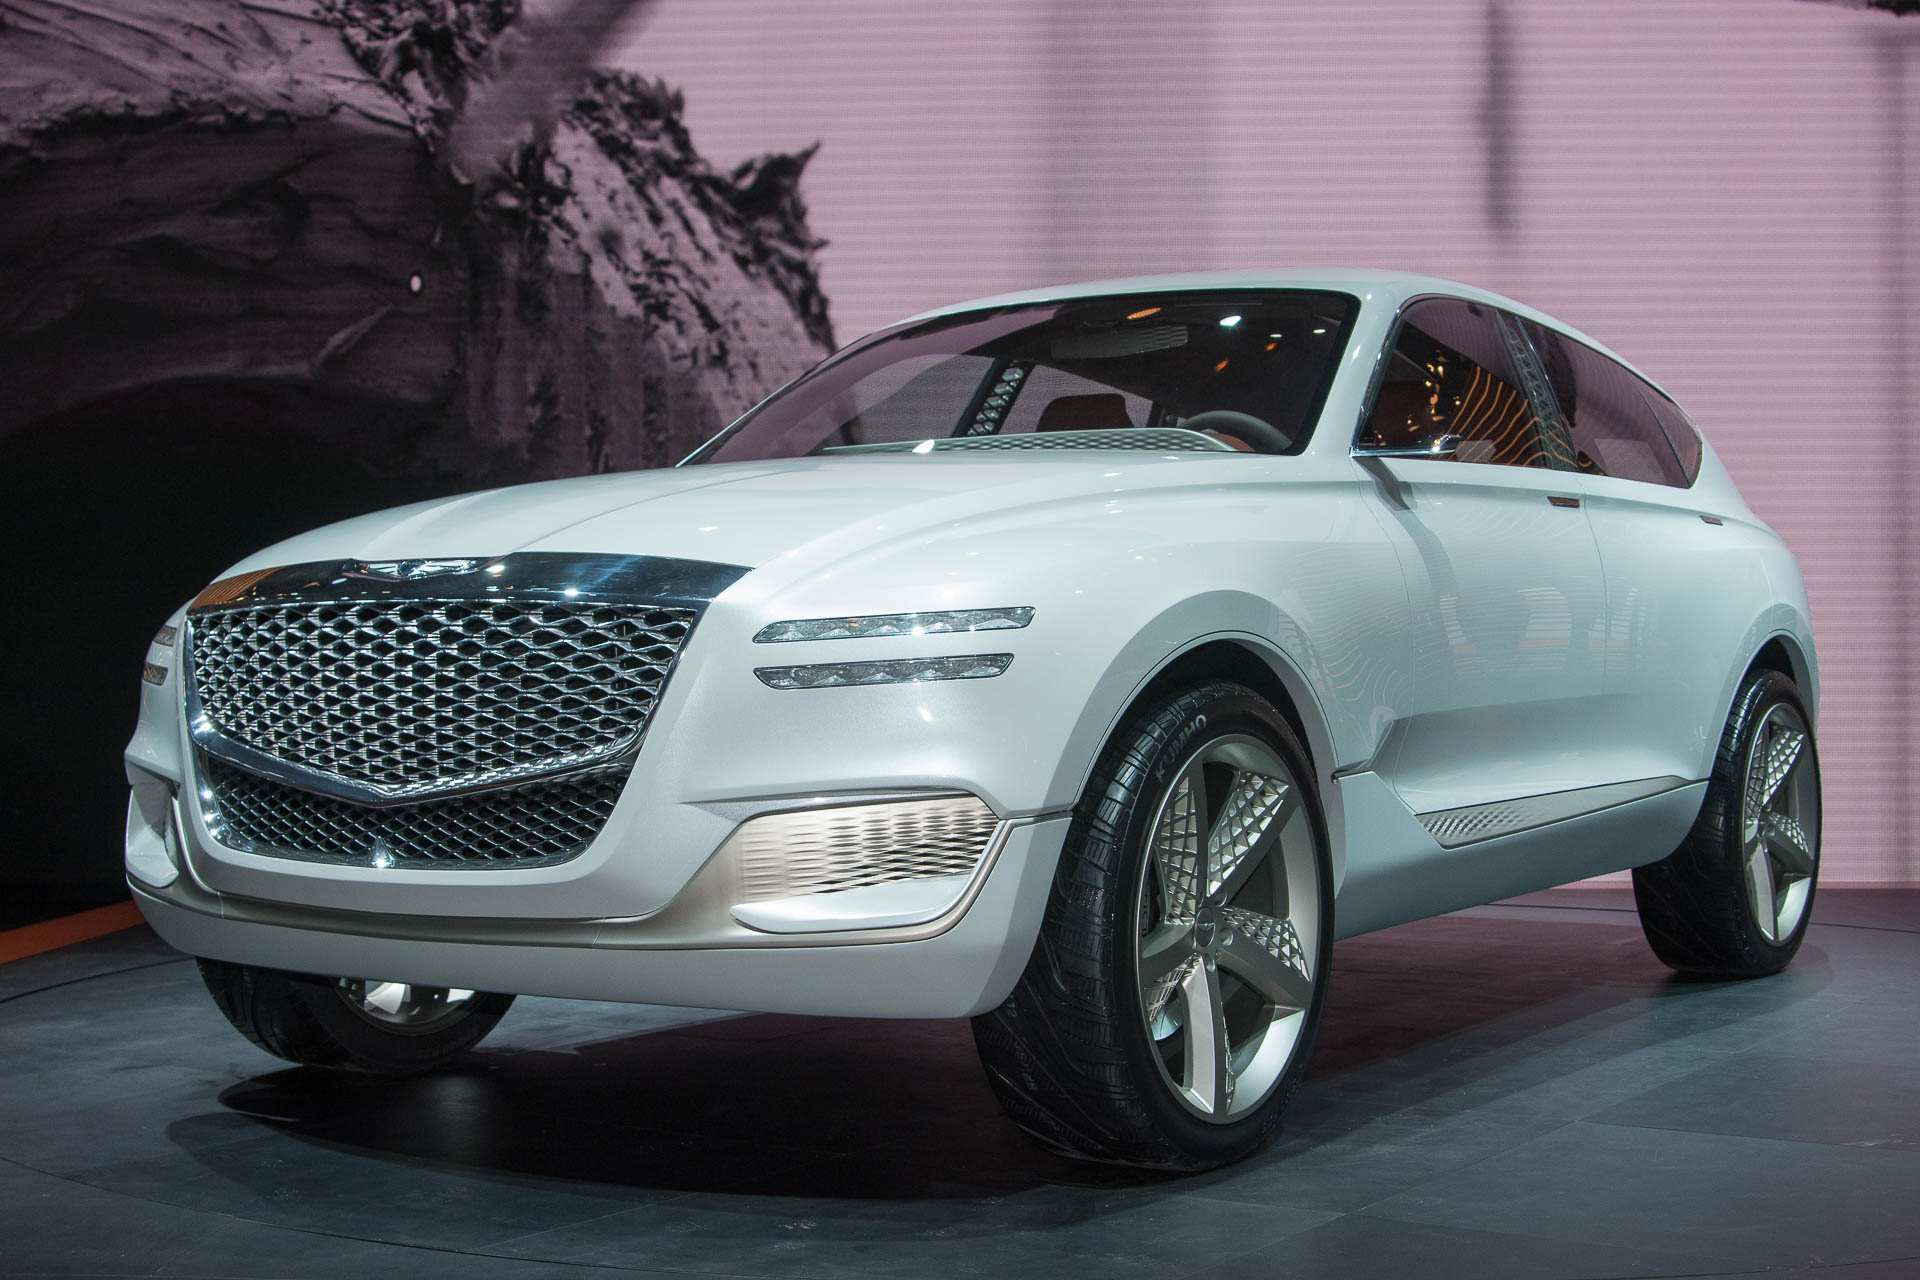 91 A 2019 Genesis Suv Pictures